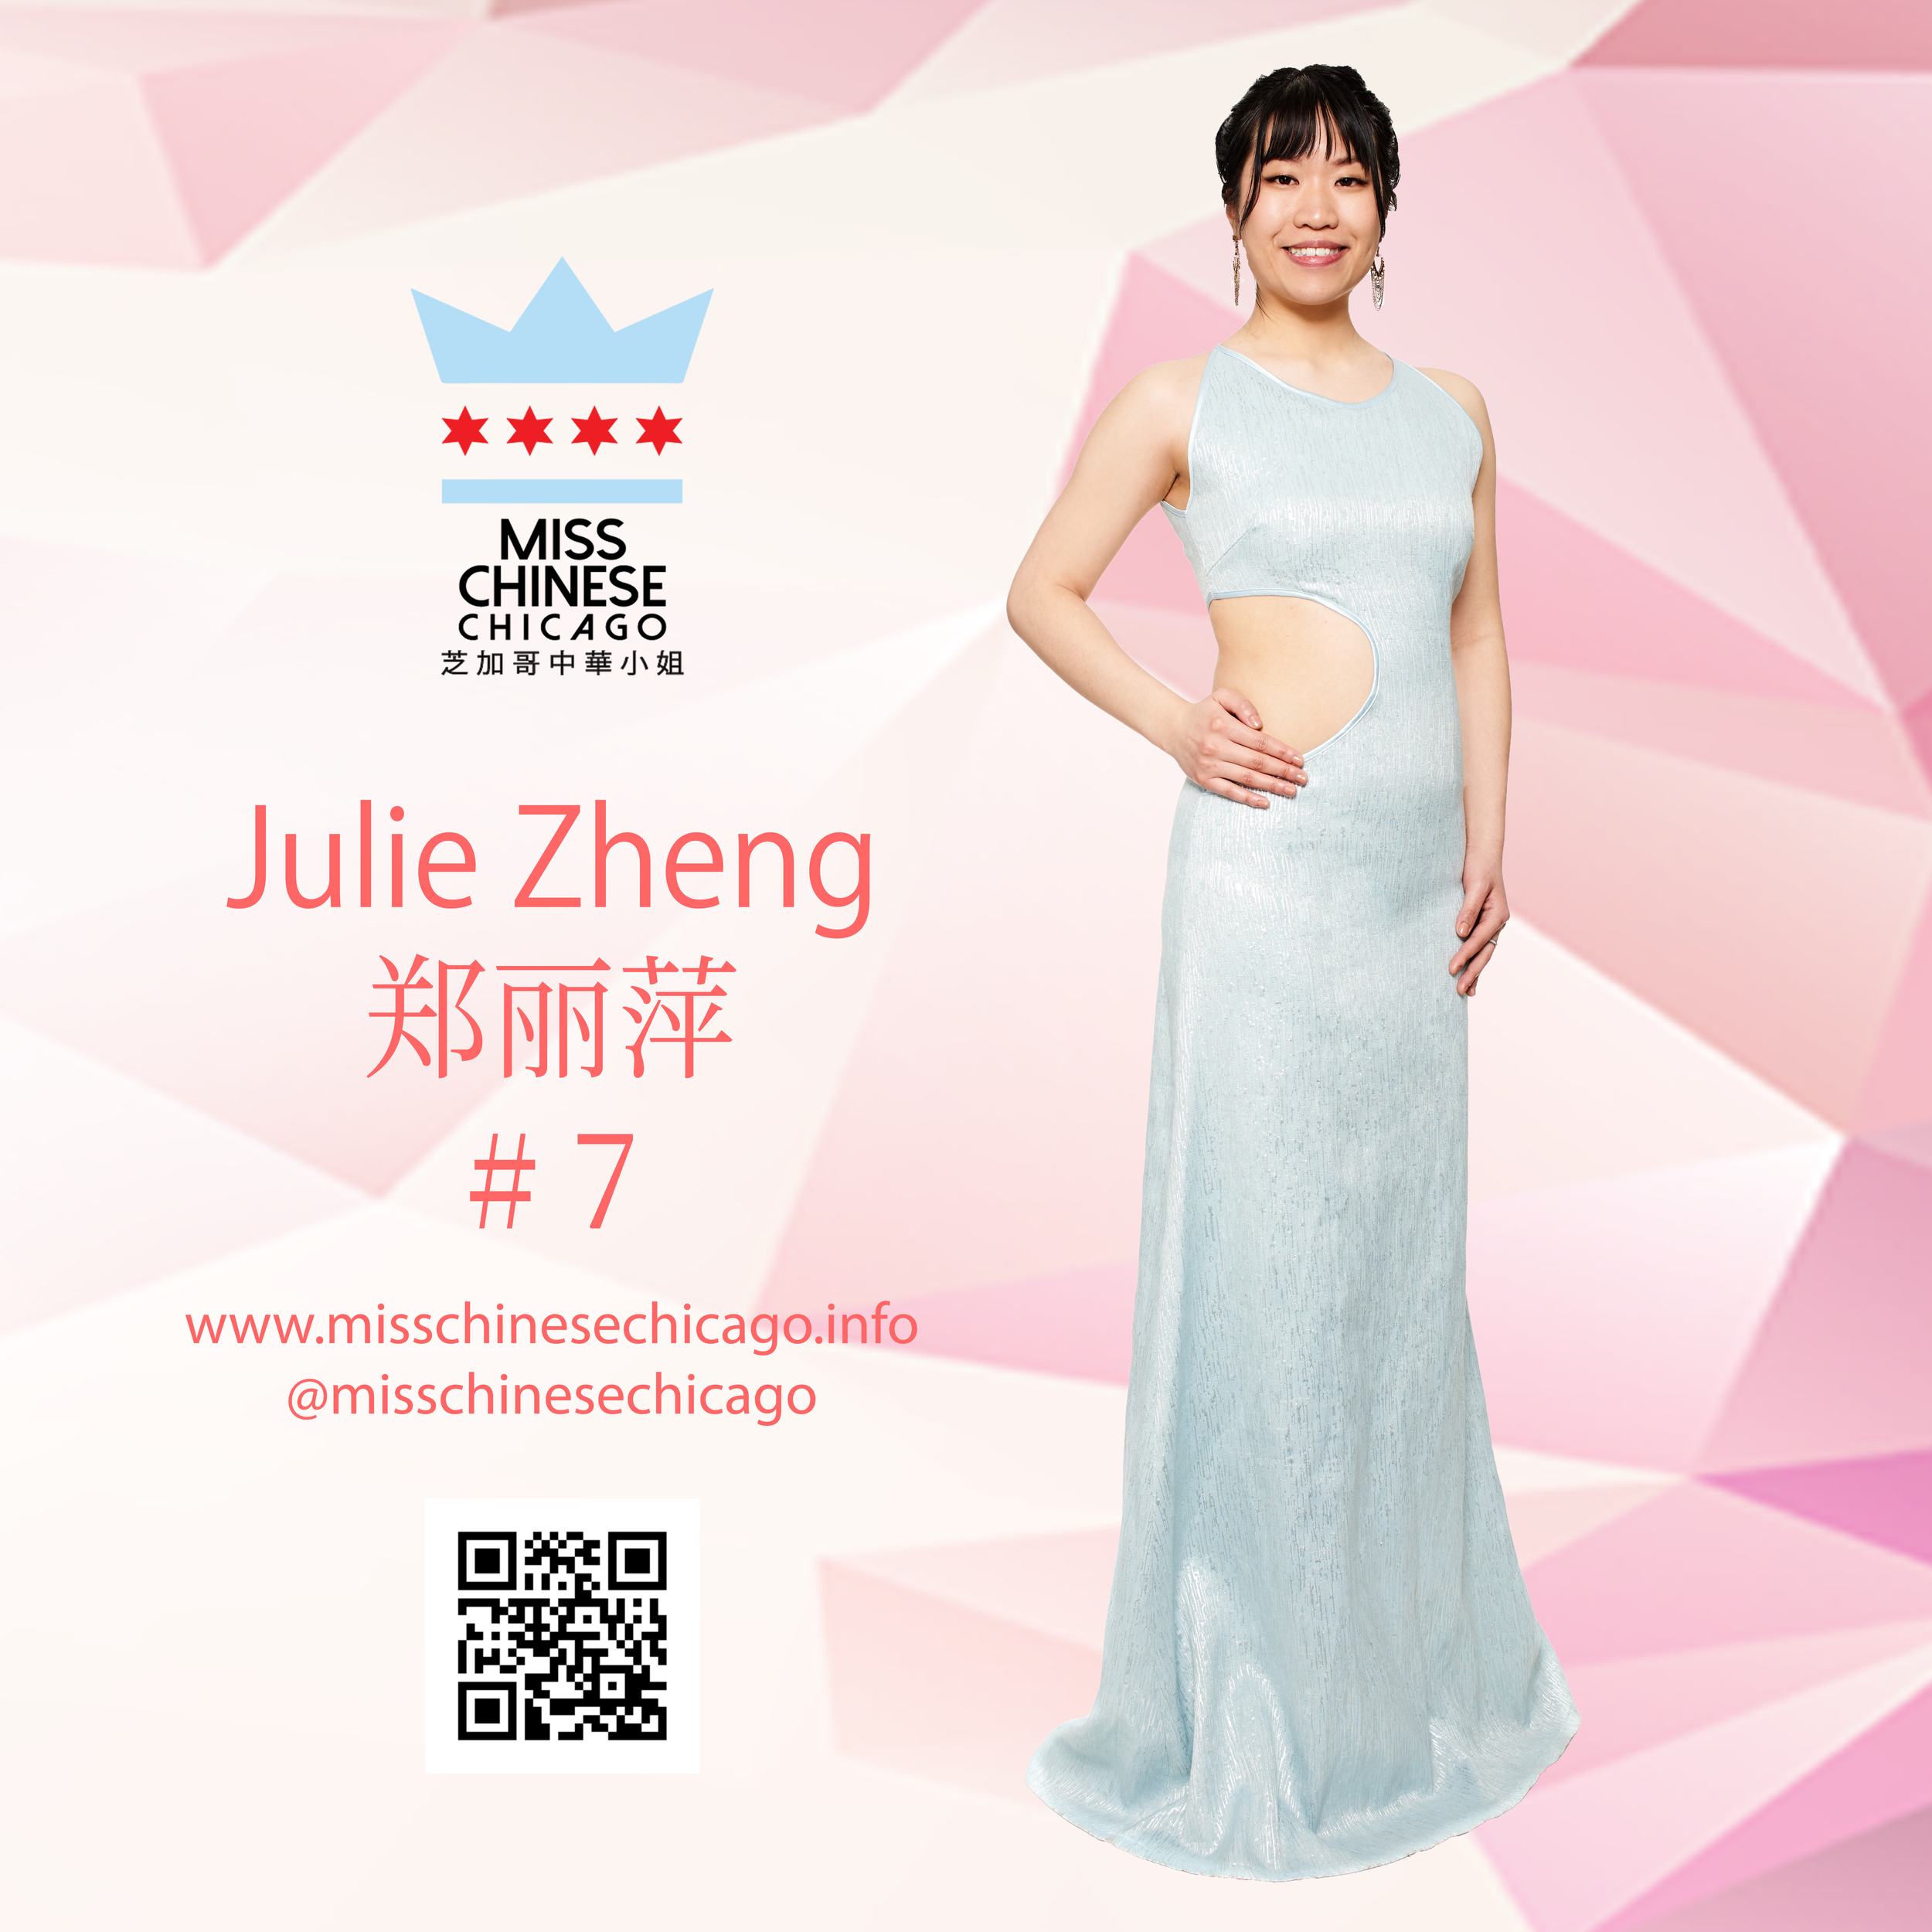 Julie Zheng 2019 Contestant